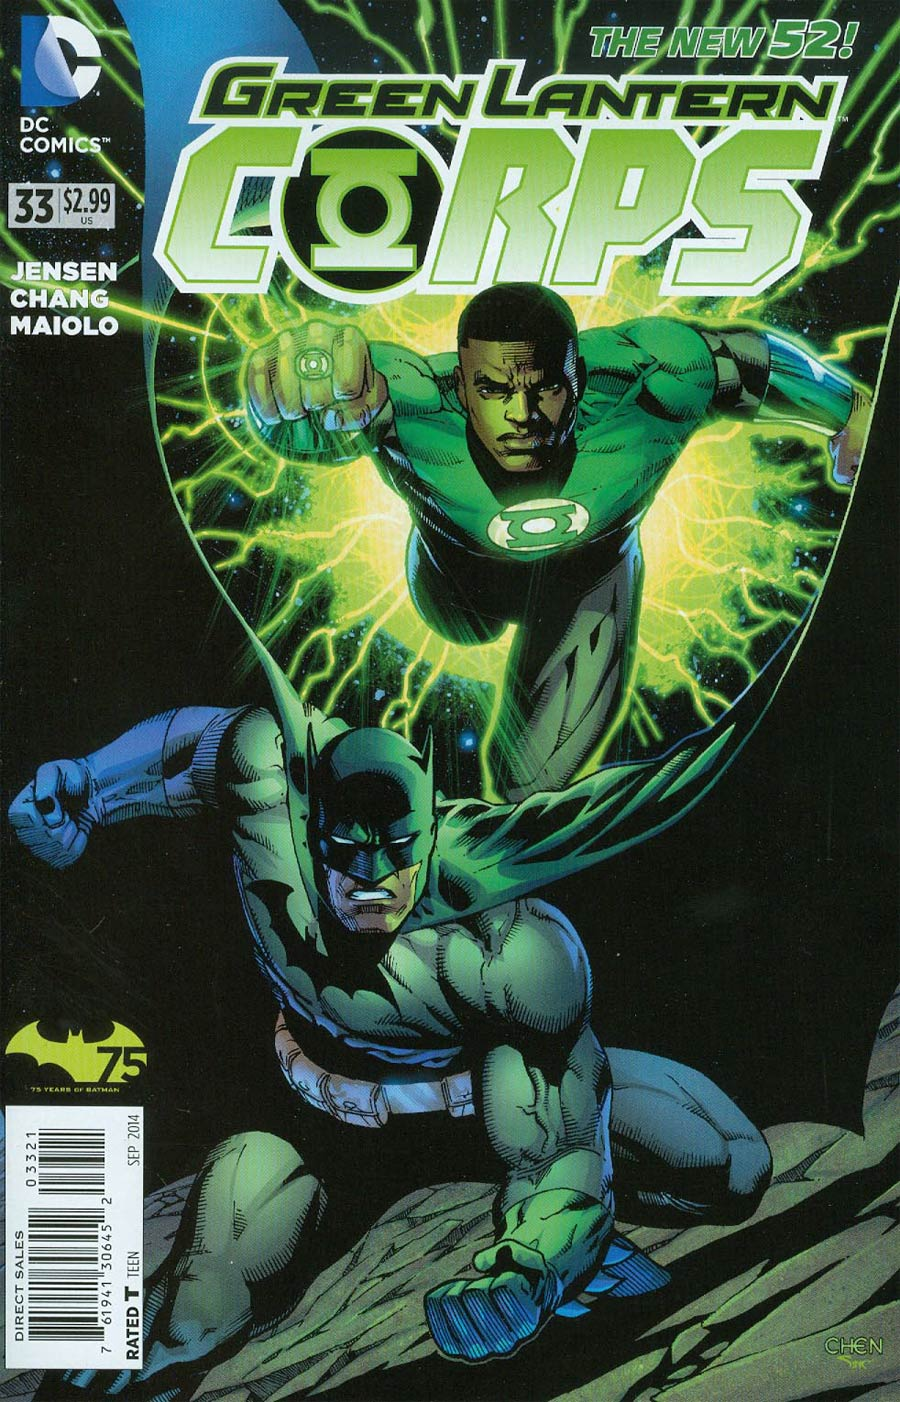 Green Lantern Corps Vol 3 #33 Cover B Variant Sean Chen Batman 75th Anniversary Cover (Uprising Part 6)